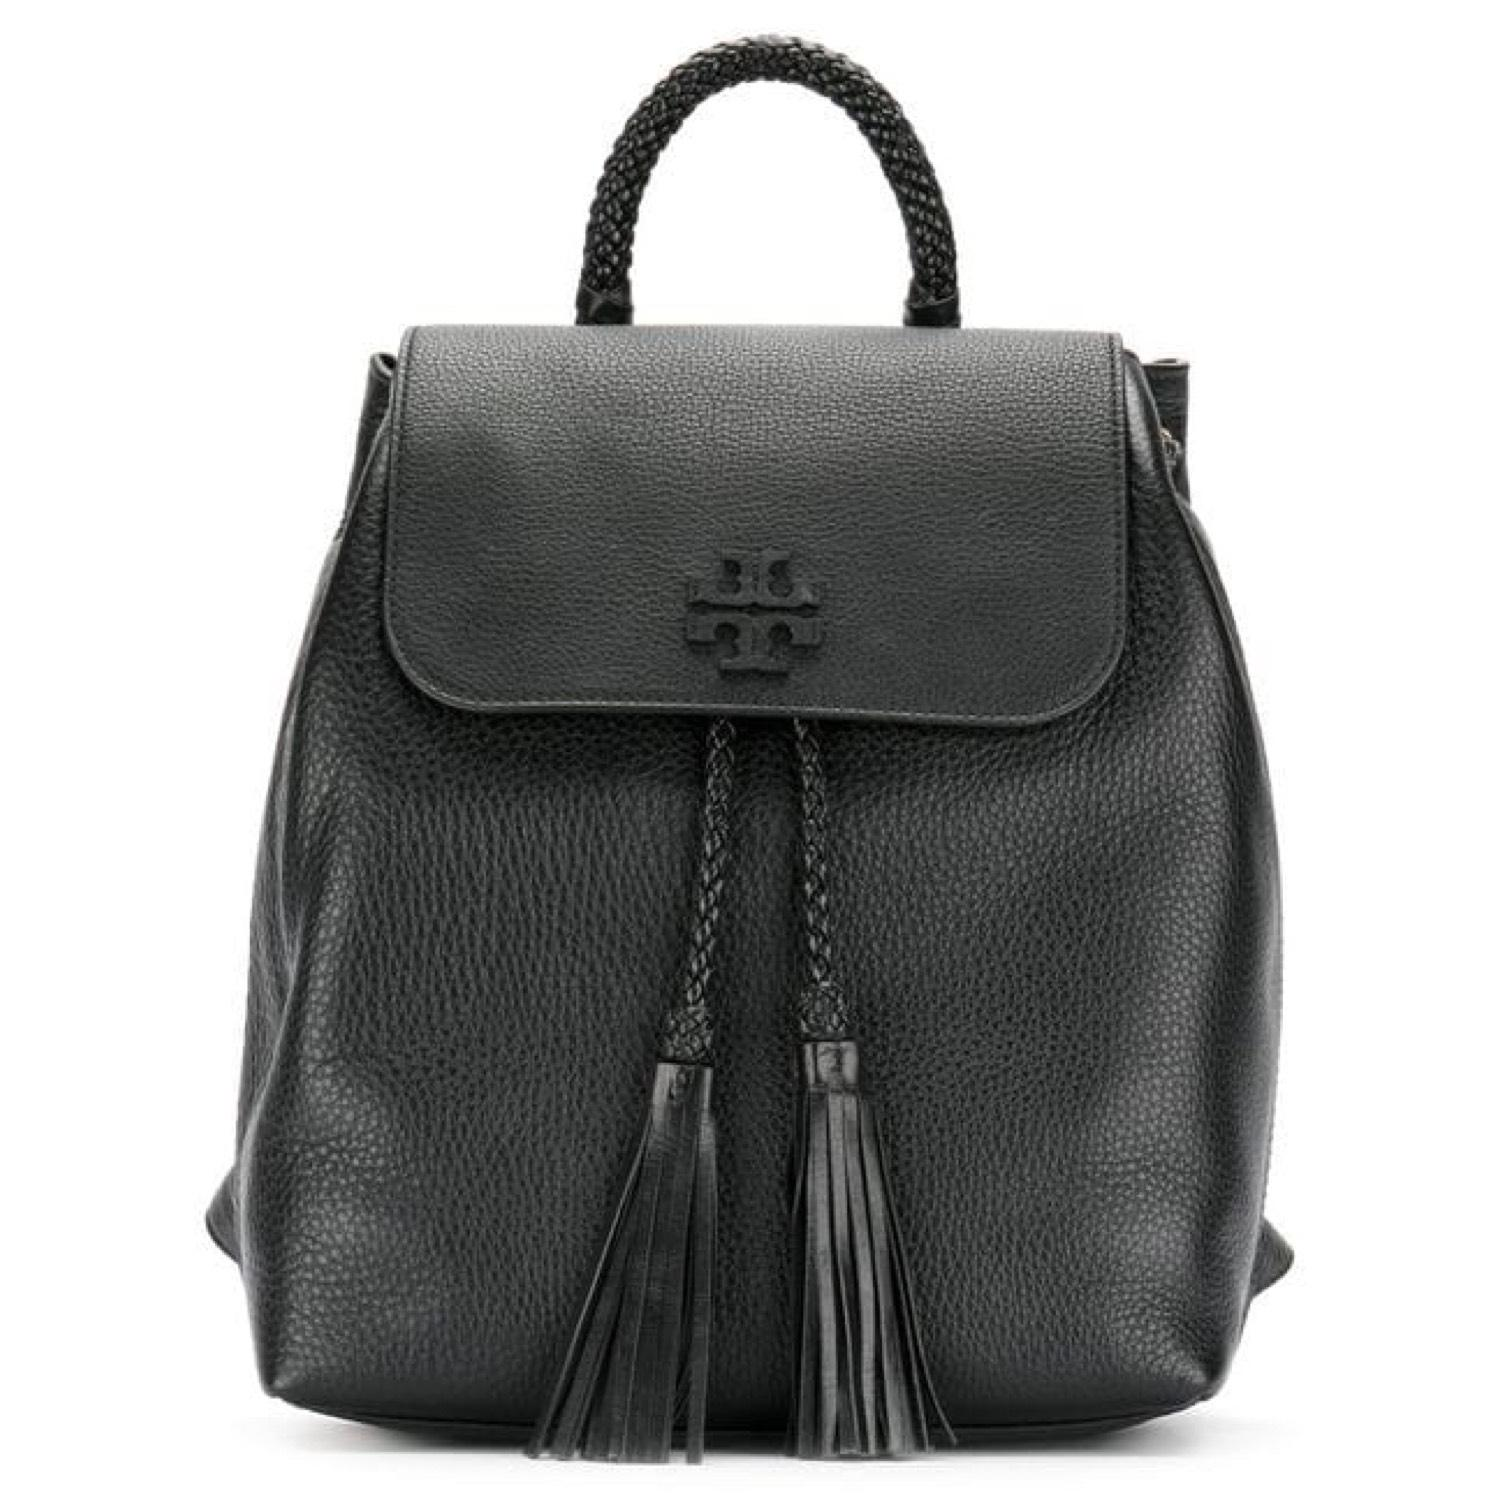 5d2c23770a4df Tory burch taylor saddle black leather backpack tradesy jpg 960x960 Tory  burch black leather backpack